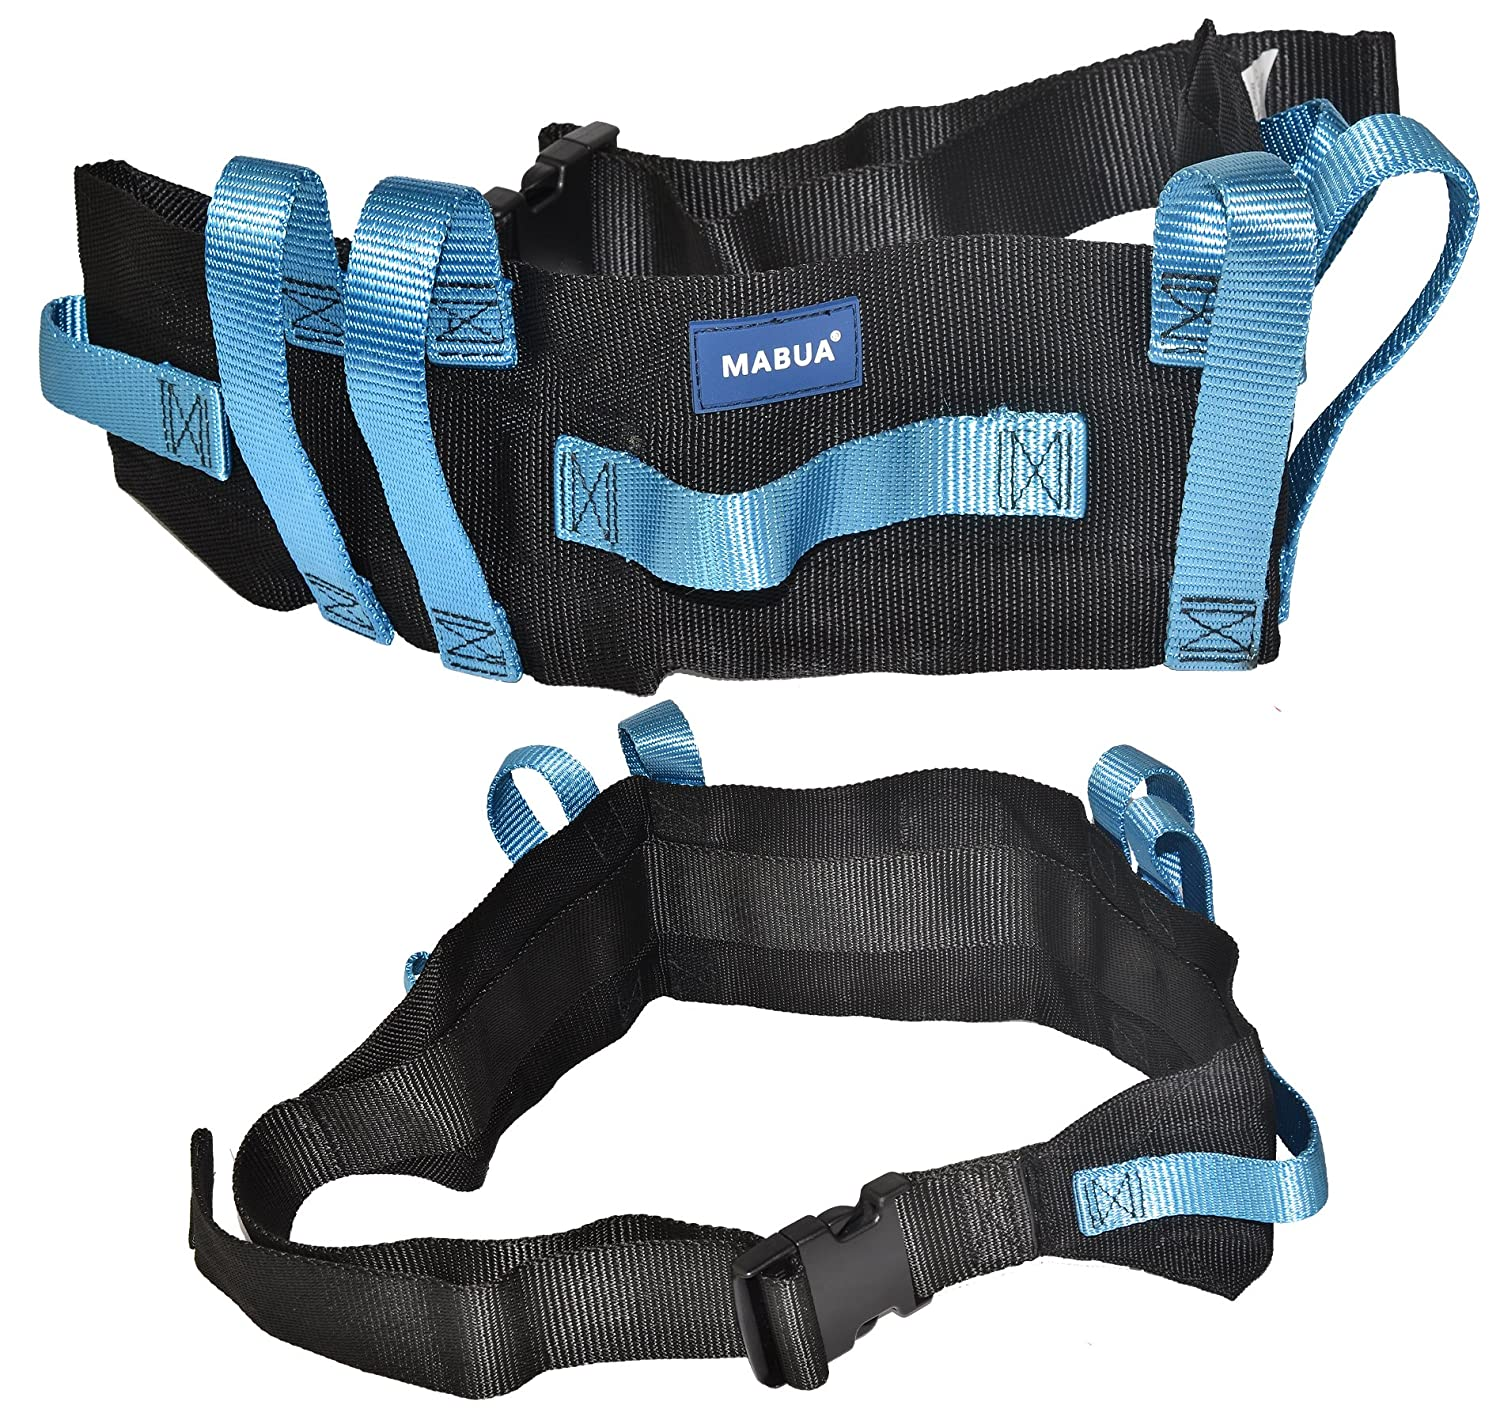 Hand physical therapy equipment - Original Physical Therapy Transfer Walking Gait Belt With 7 Hand Grips Easy Release Plastic Buckle Plastic Buckle Also Available In Metal Buckle